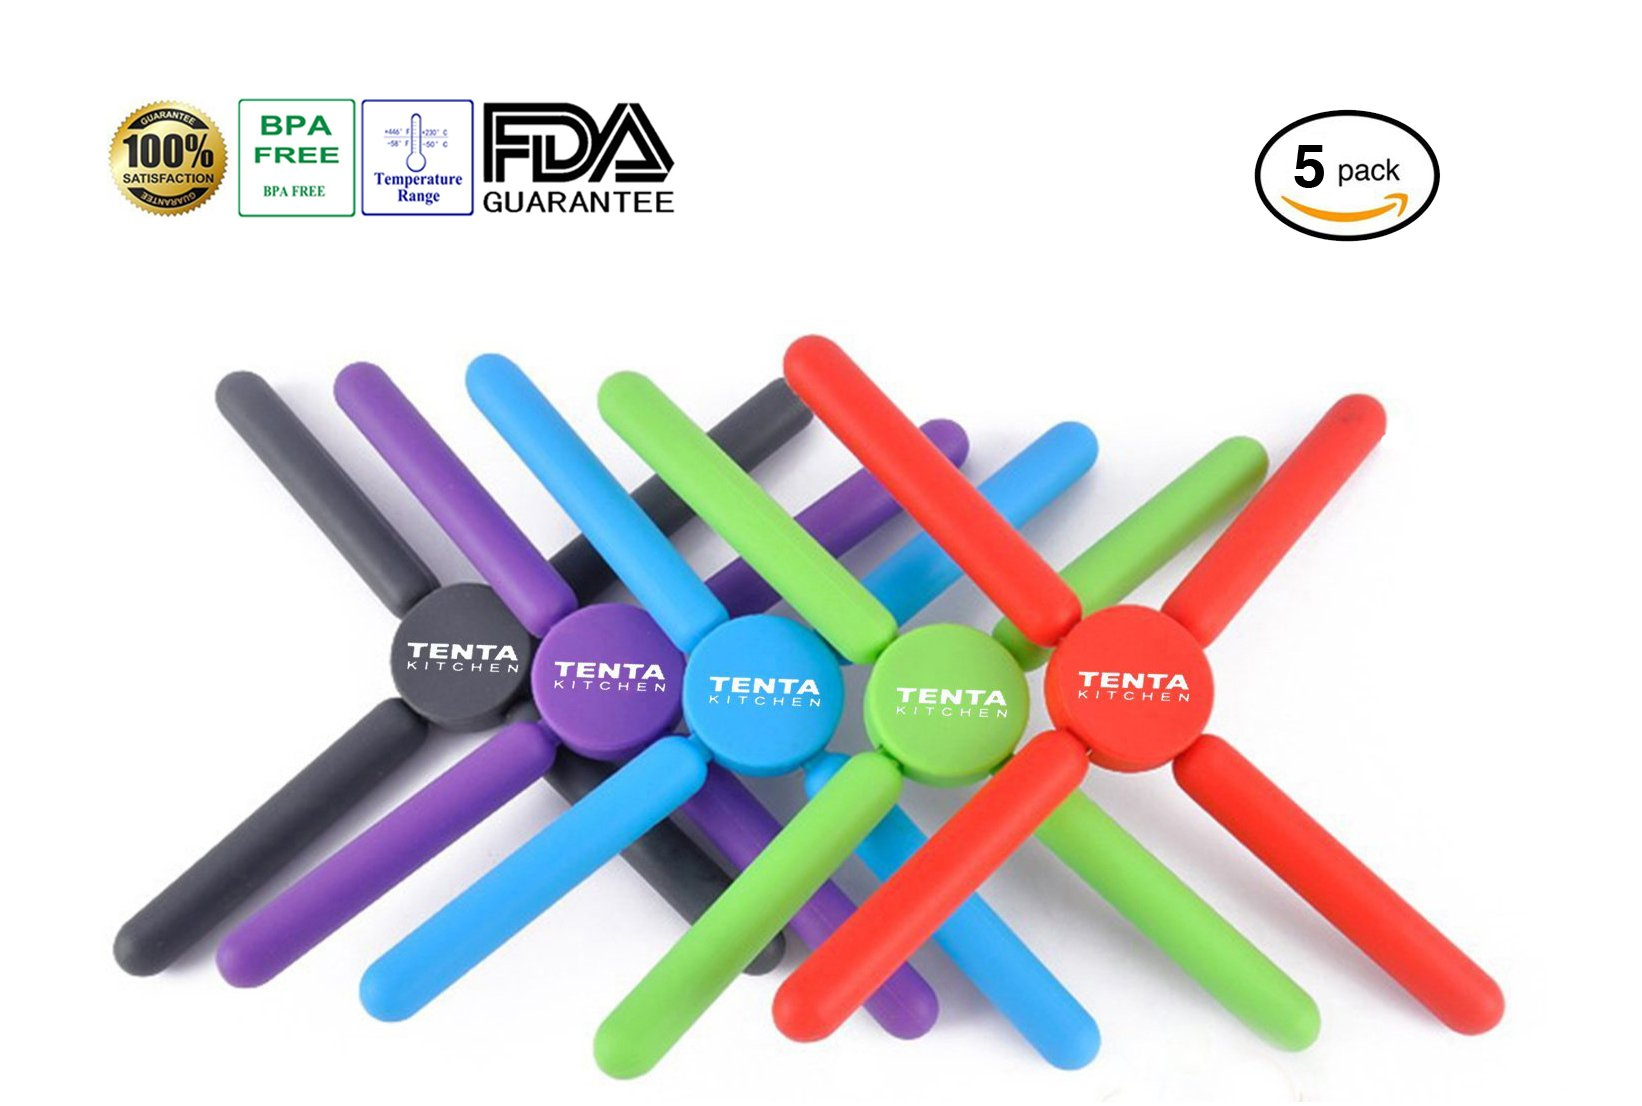 Tenta Kitchen Foldable Silicone Trivets-expandable/collapsible(pack of 5) by TENTA Kitchen